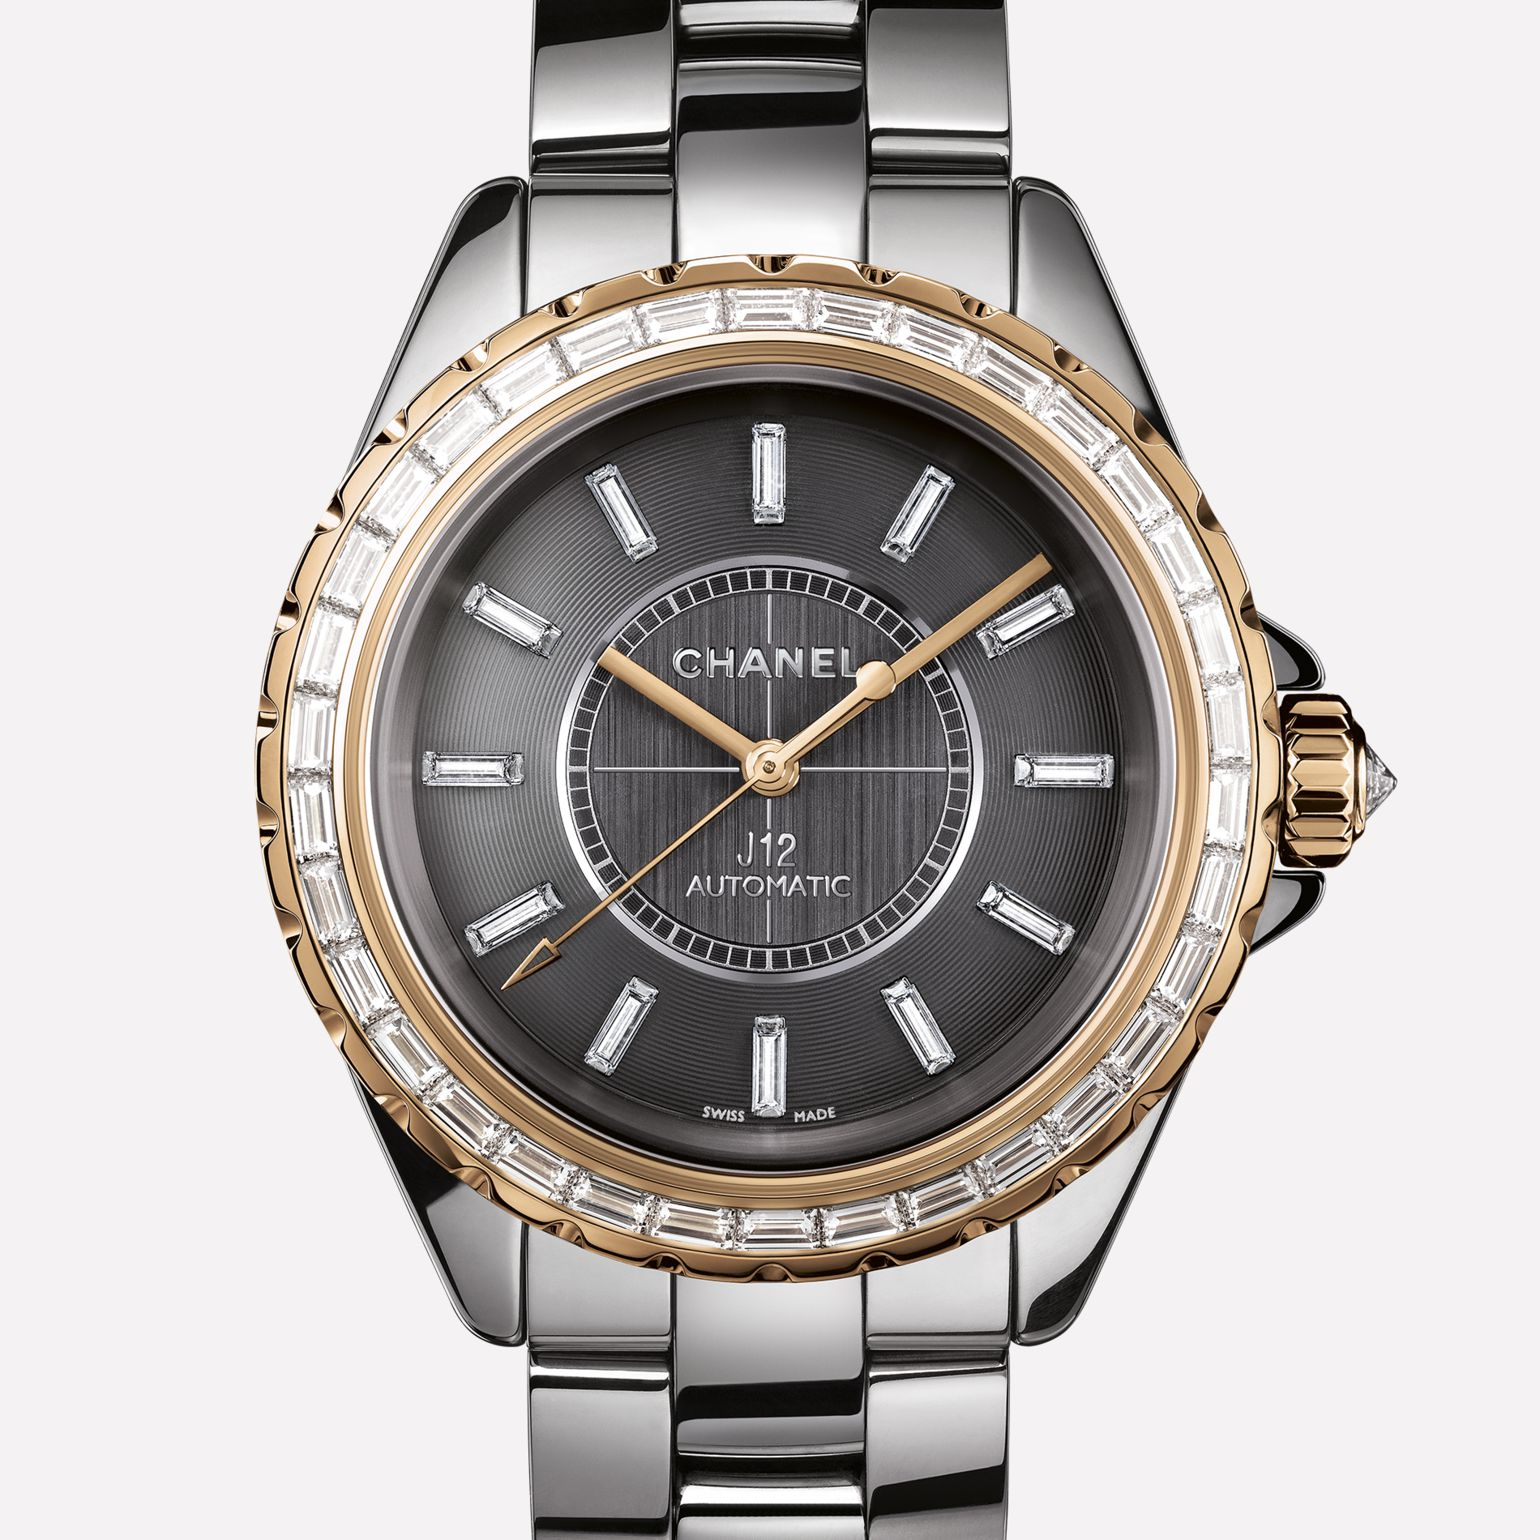 J12 Jewellery Watch Titanium ceramic and BEIGE GOLD, bezel and indicators with baguette cut diamonds